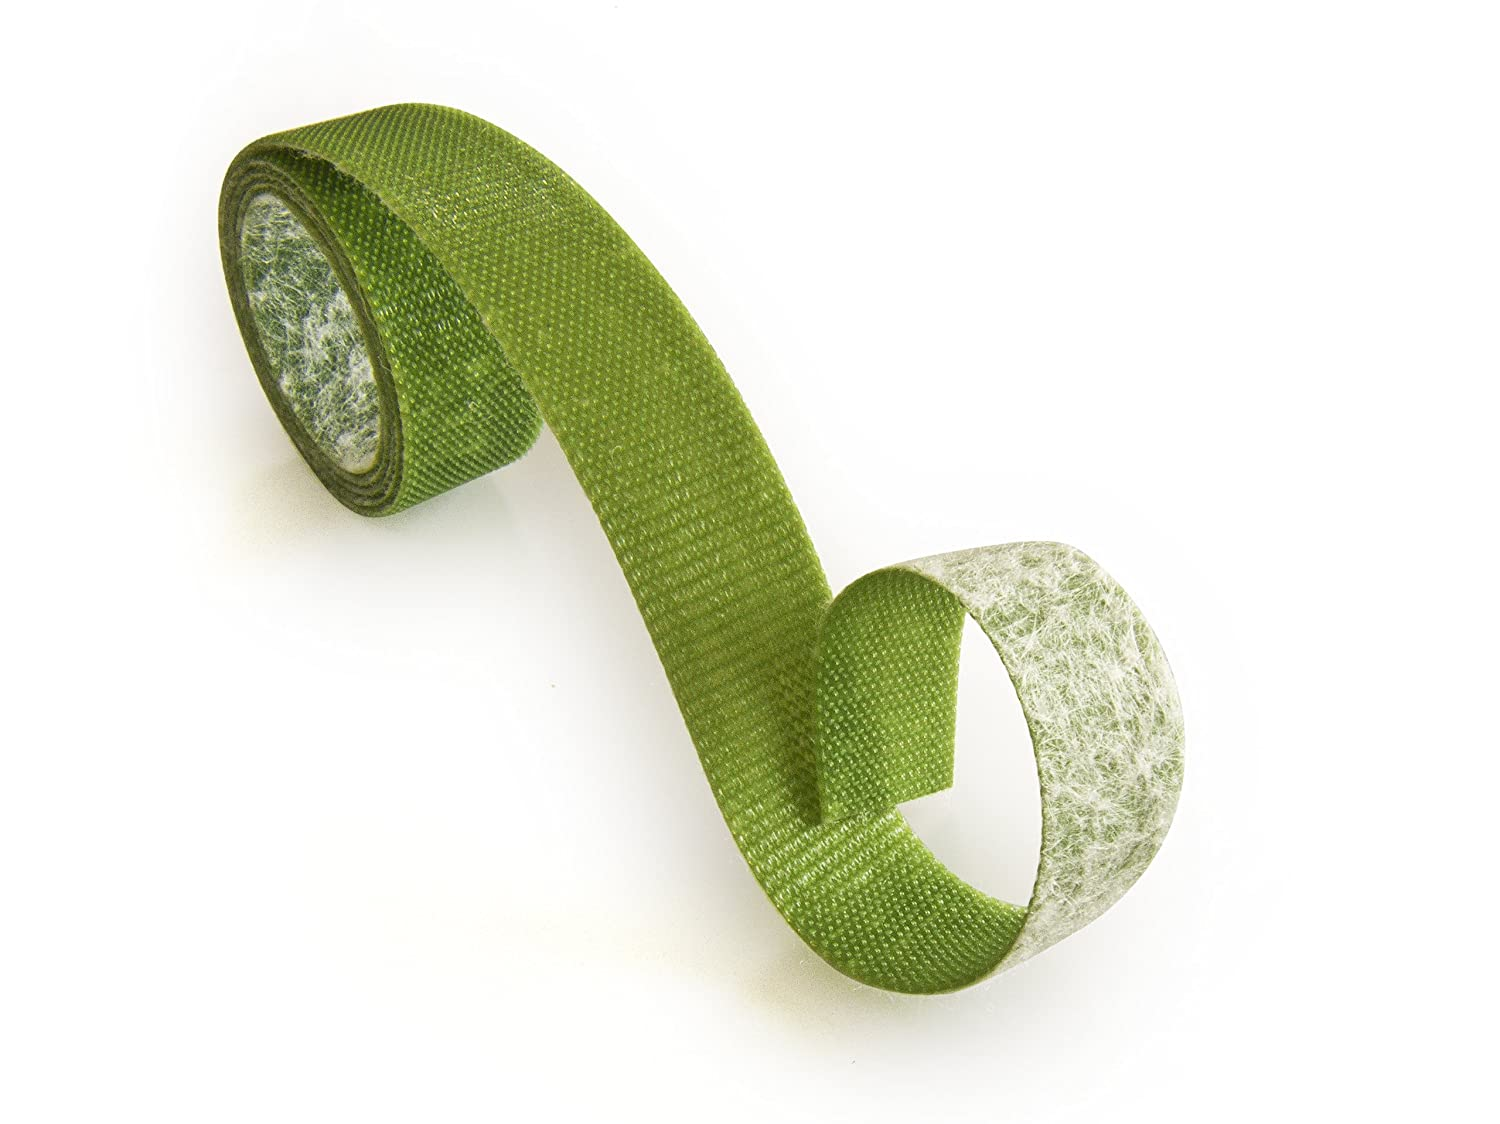 VELCRO Brand Colliers sp/écial plantes ONE-WRAP 12mm x 5M vert